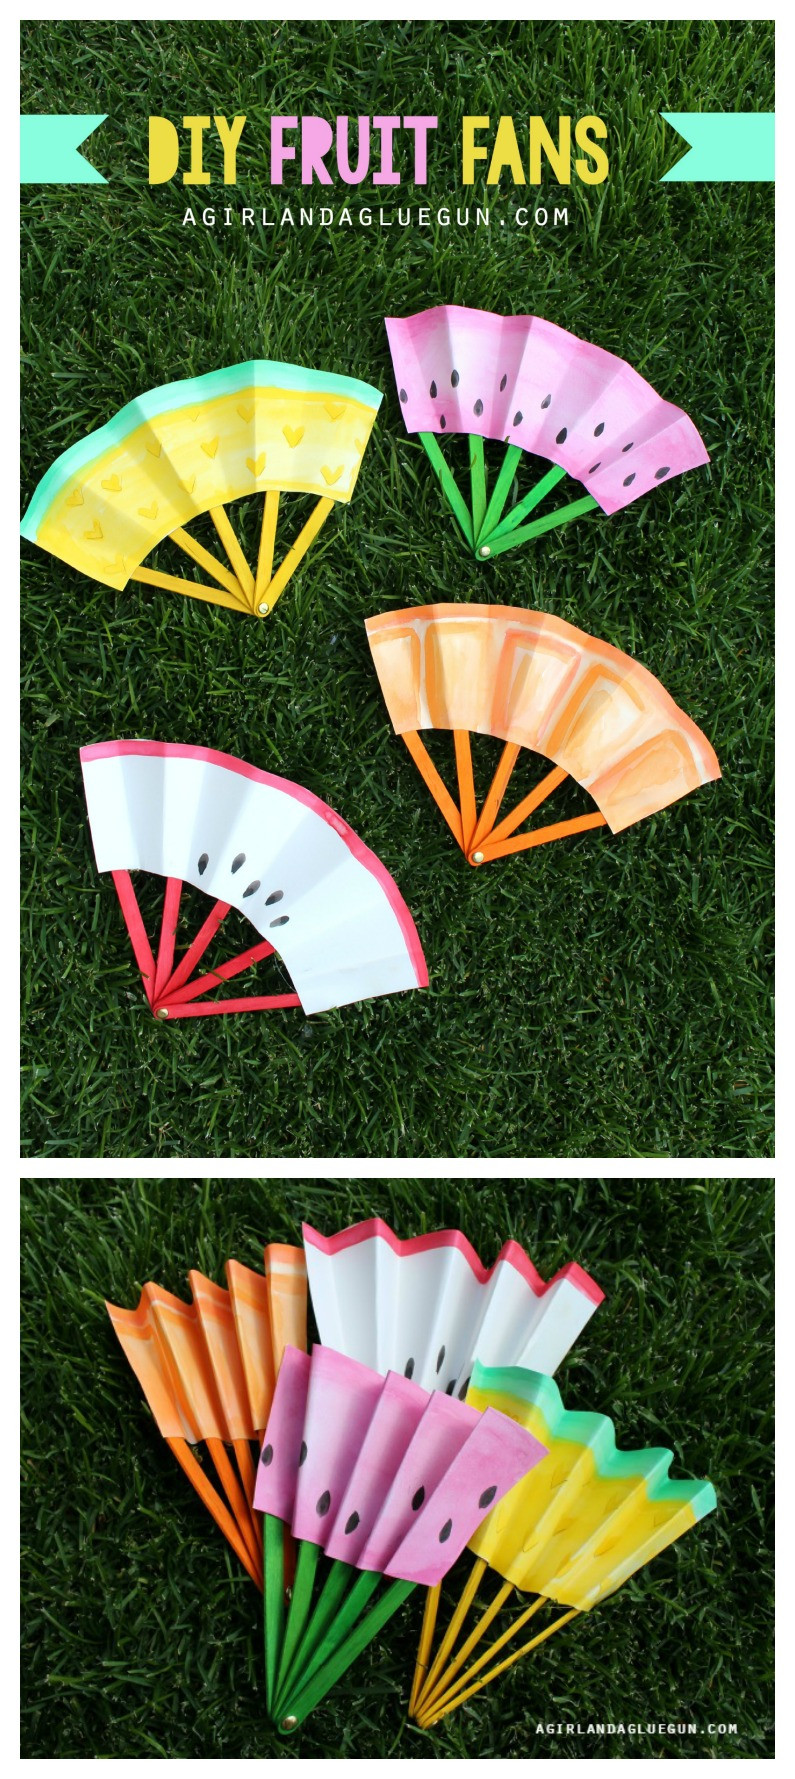 Best ideas about Easy DIY Crafts For Kids . Save or Pin DIY Fruit Fans Kids Craft The Idea Room Now.